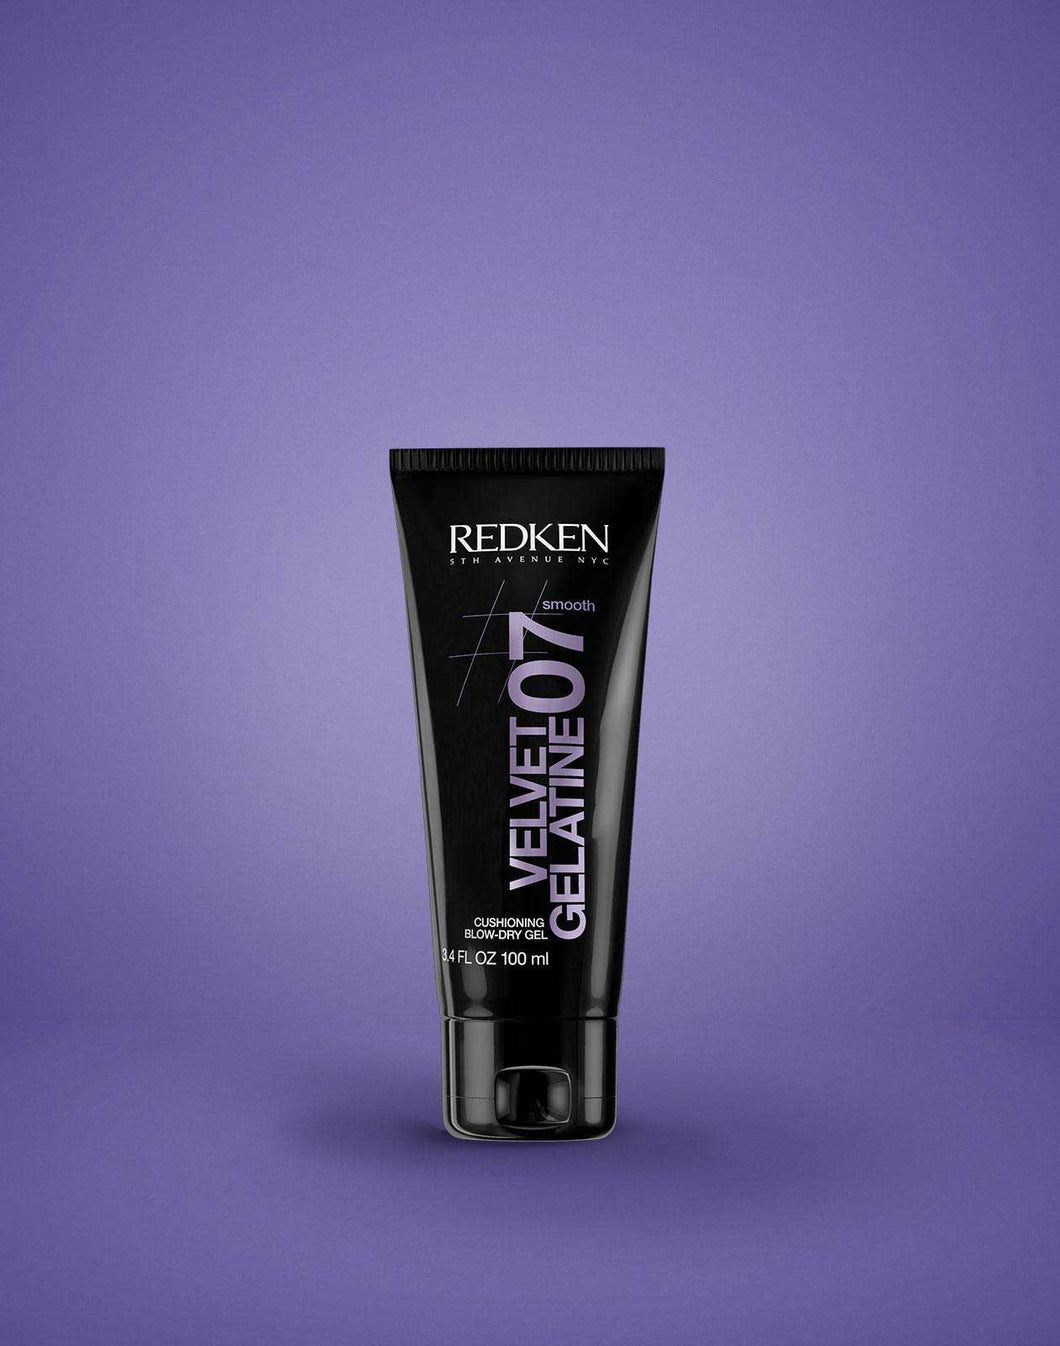 VELVET GELATINE 07 CUSHIONING BLOW DRY GEL by Redken - The Color Studio & Salon